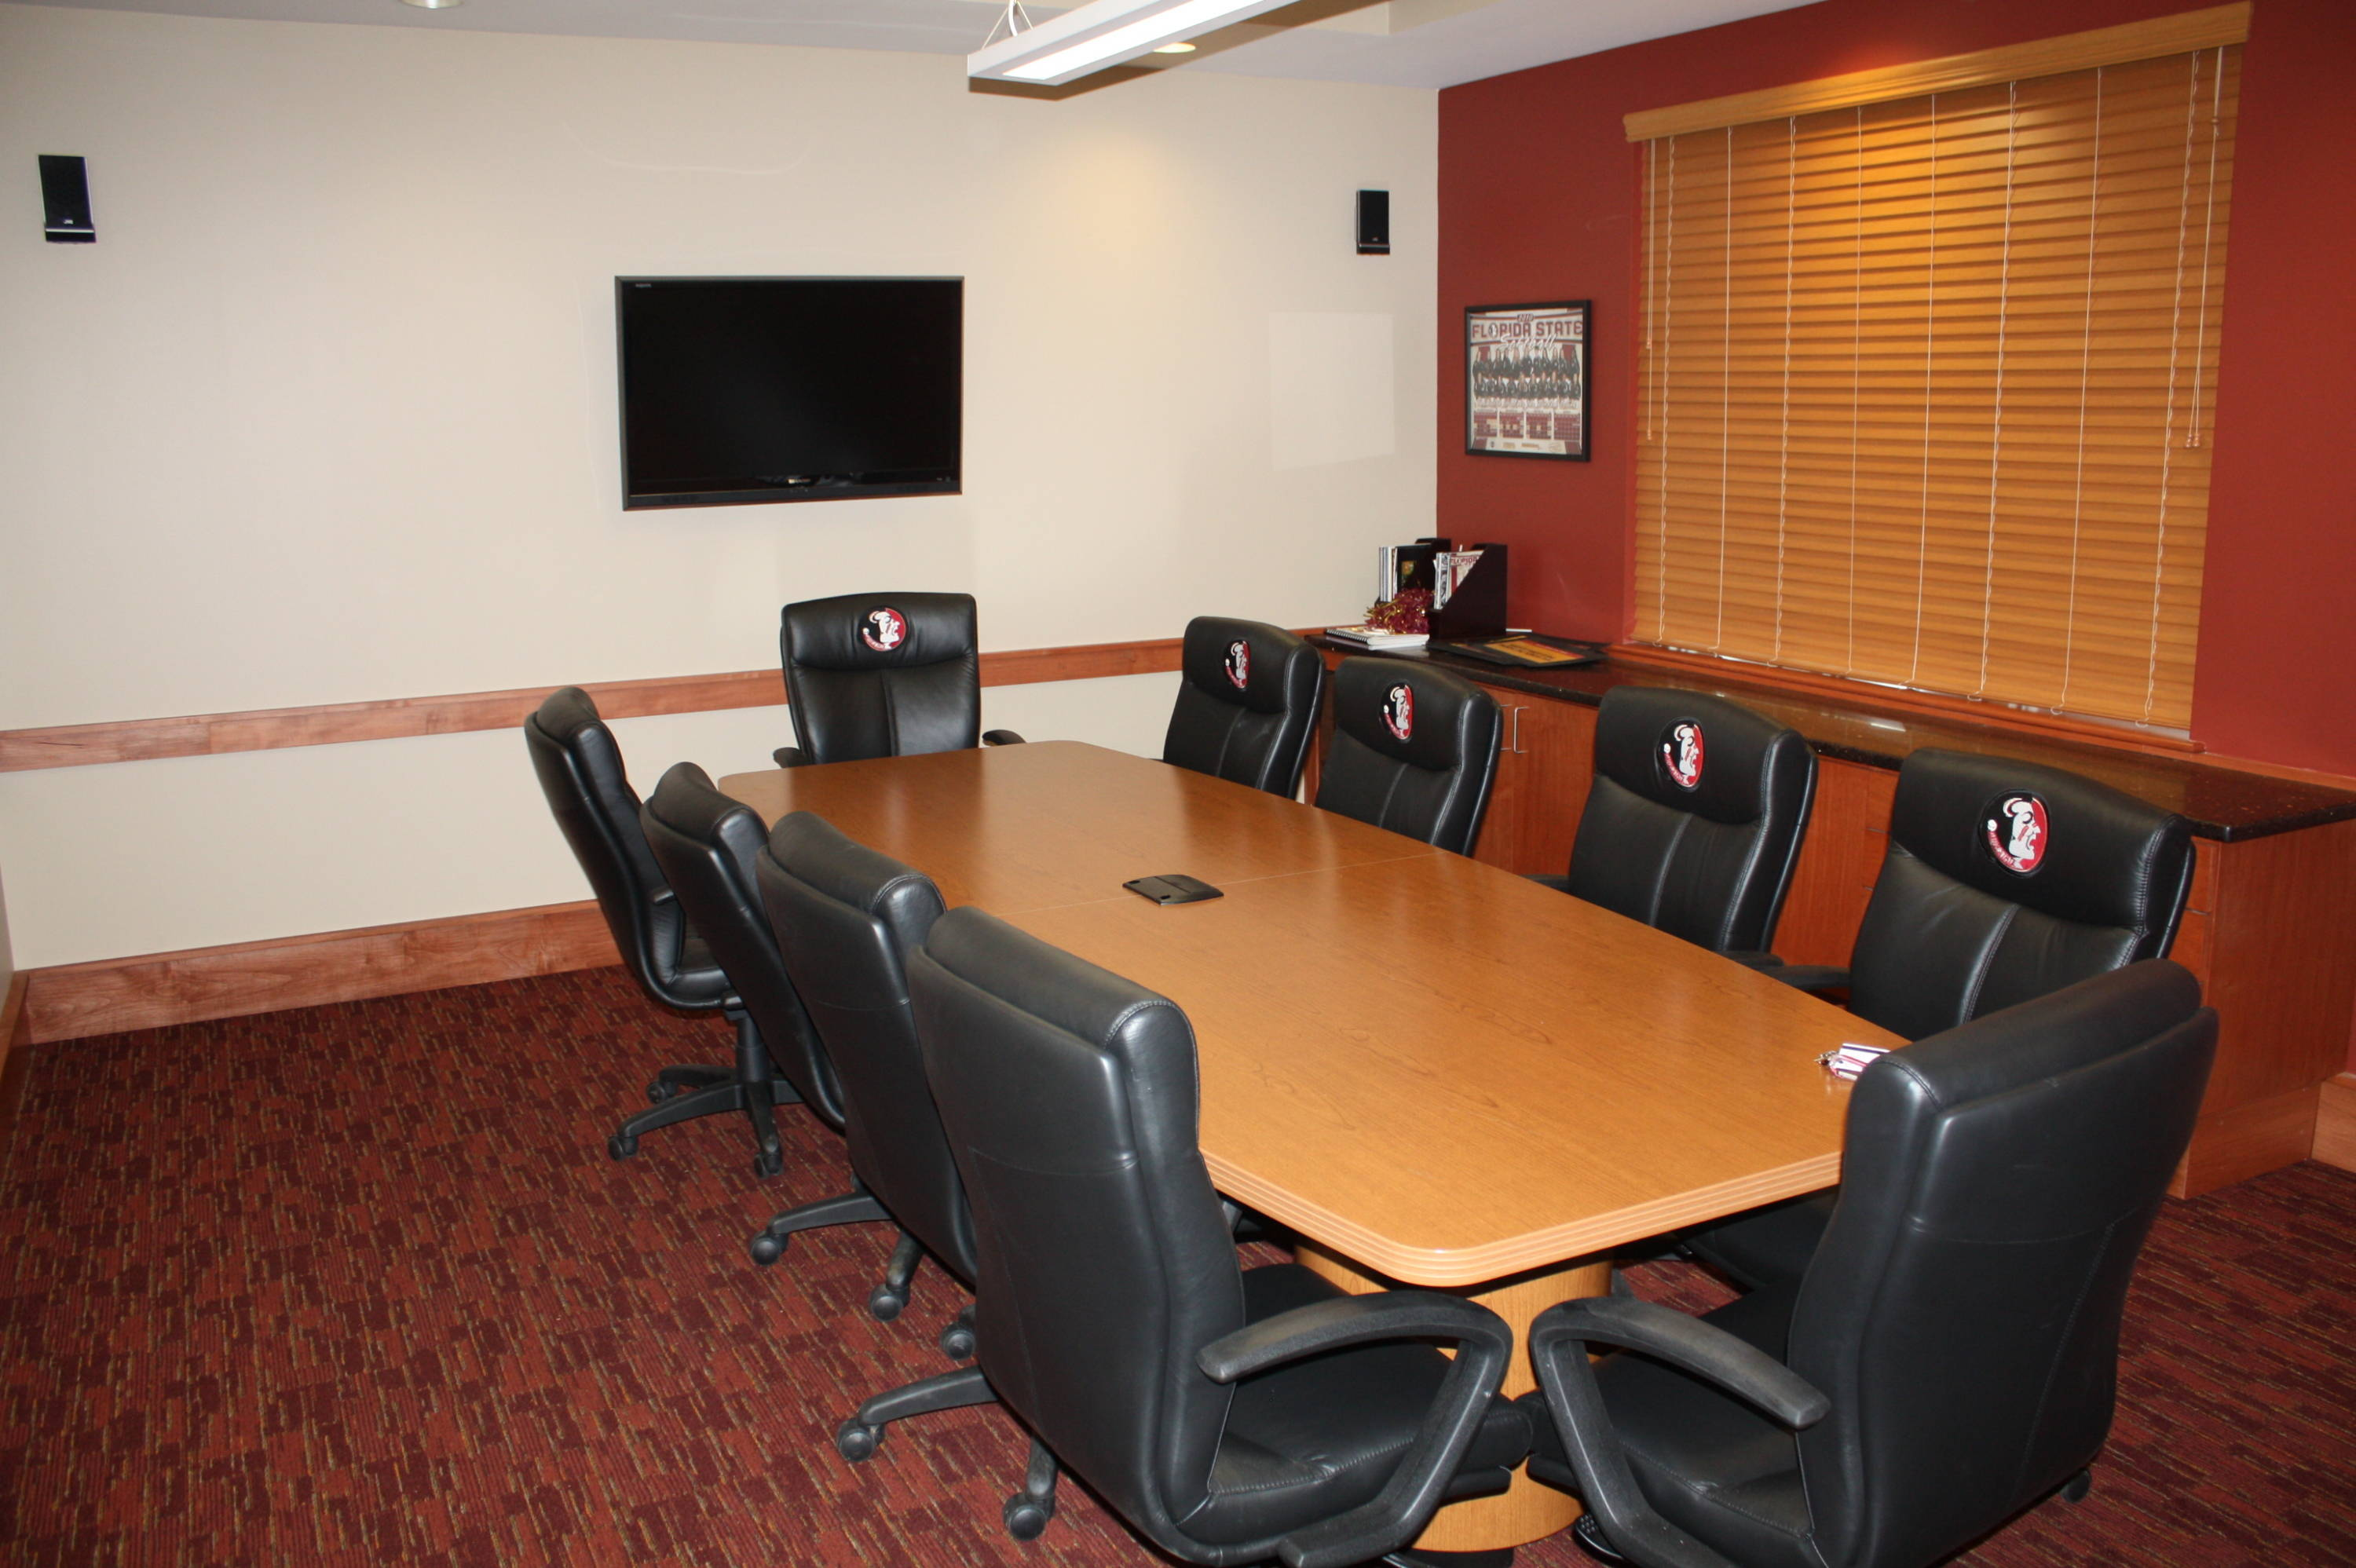 The conference room at the Seminole Softball Complex